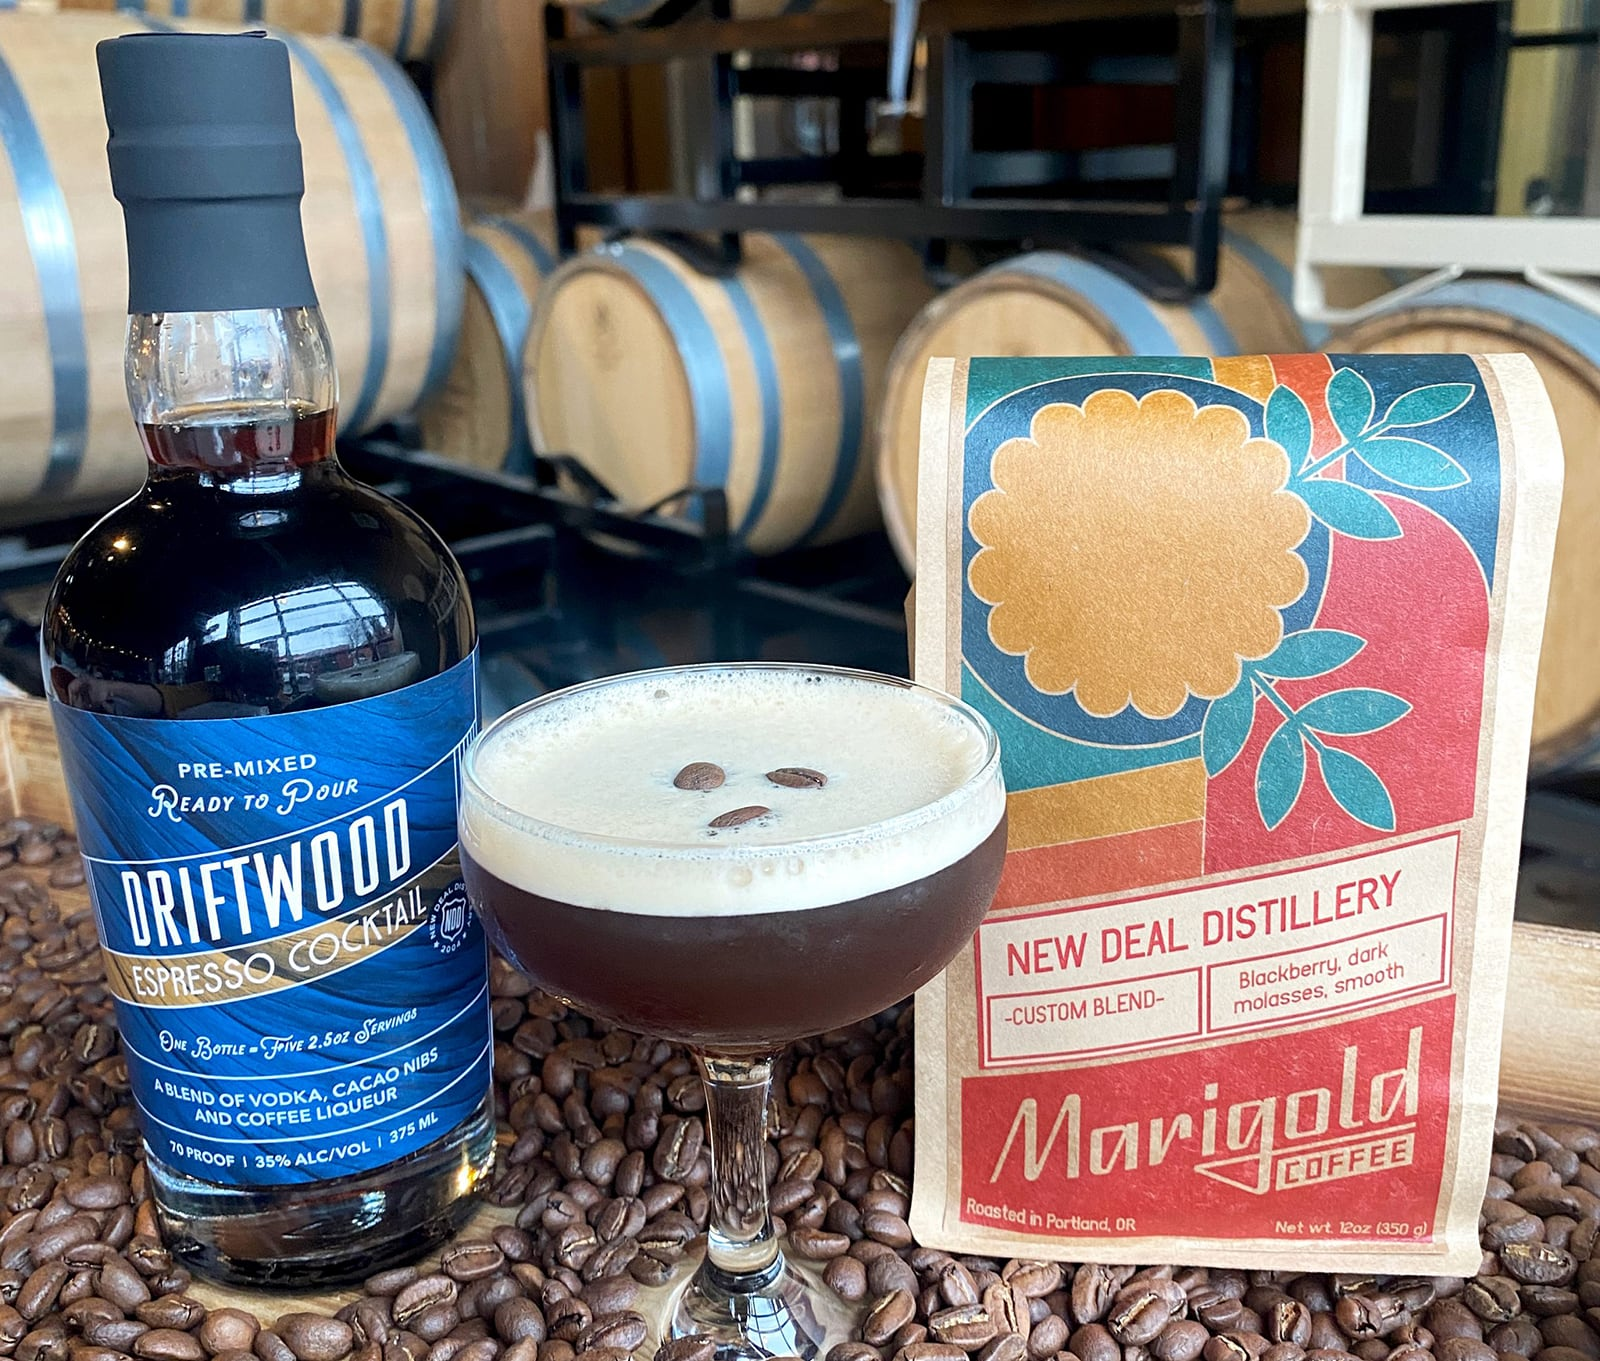 New Deal Coffee Cocktail Collaboration